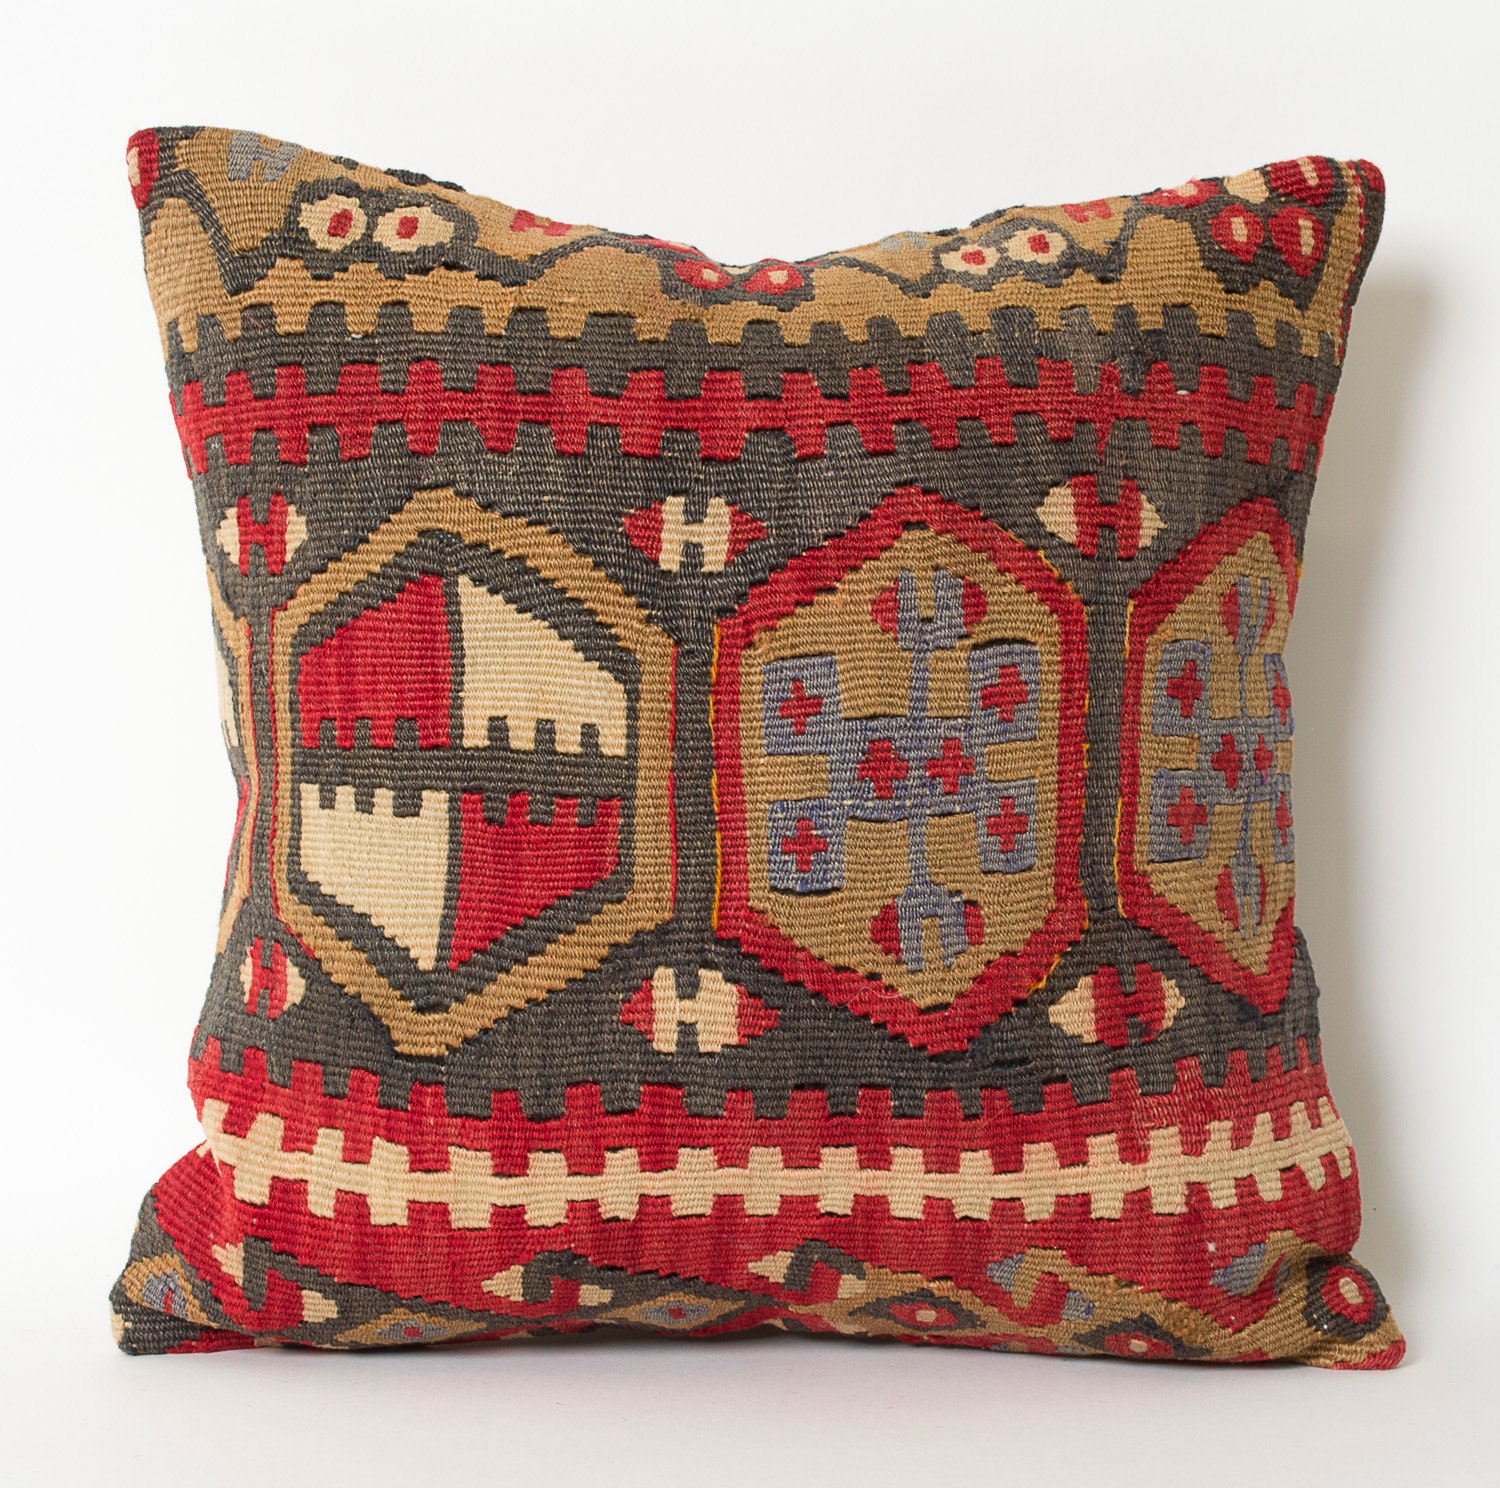 Decorative Pillows Kilim : turkish pillow kilim pillow pillow decorative pillow throw